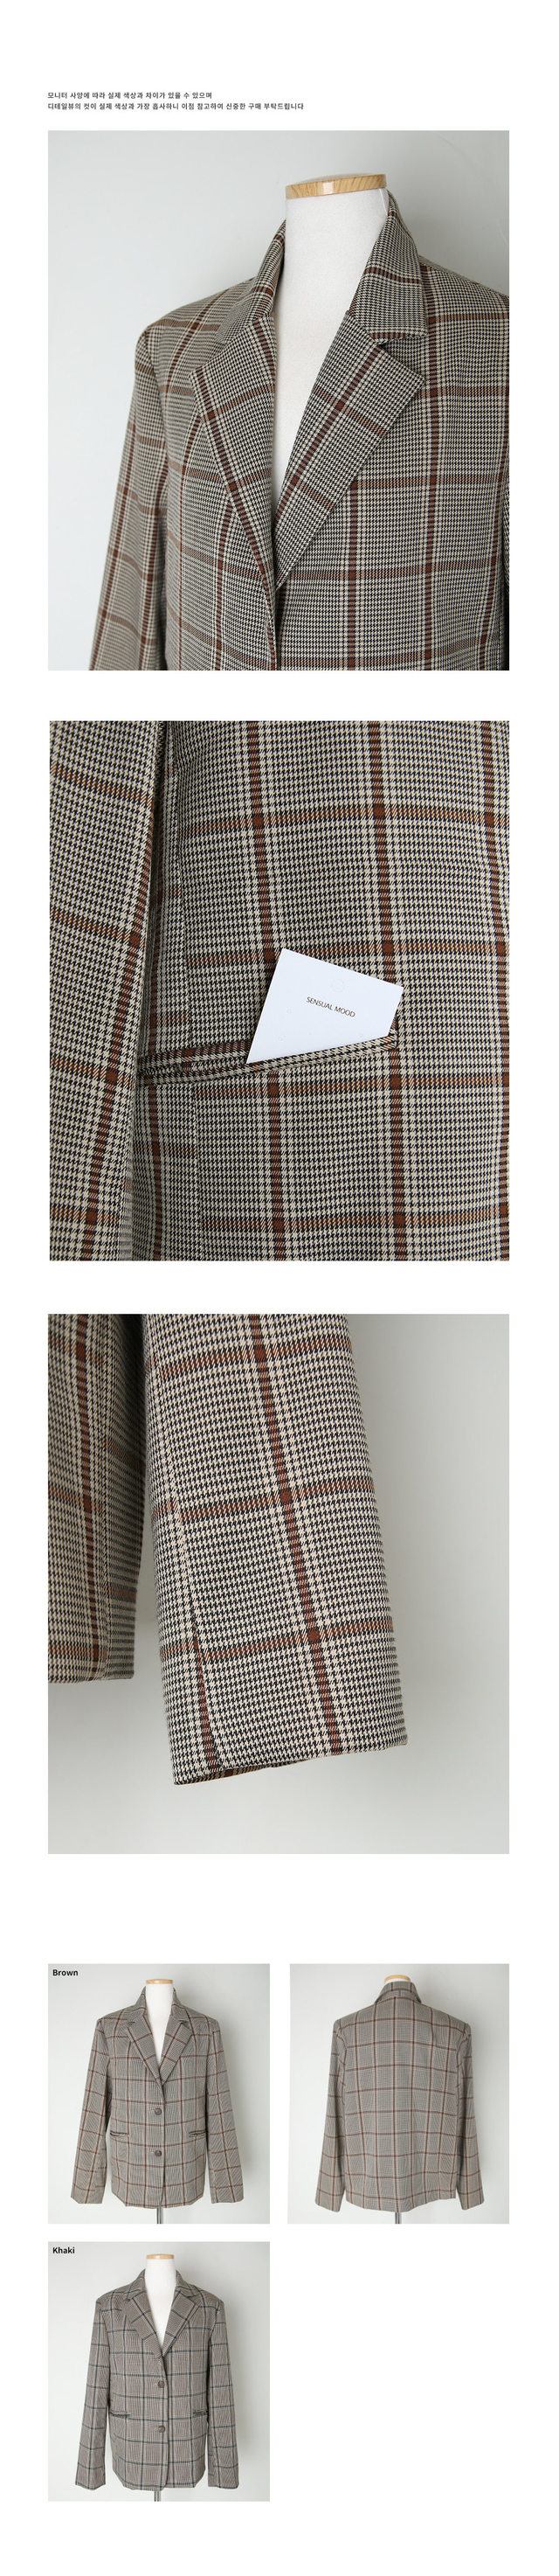 Glen check single jacket